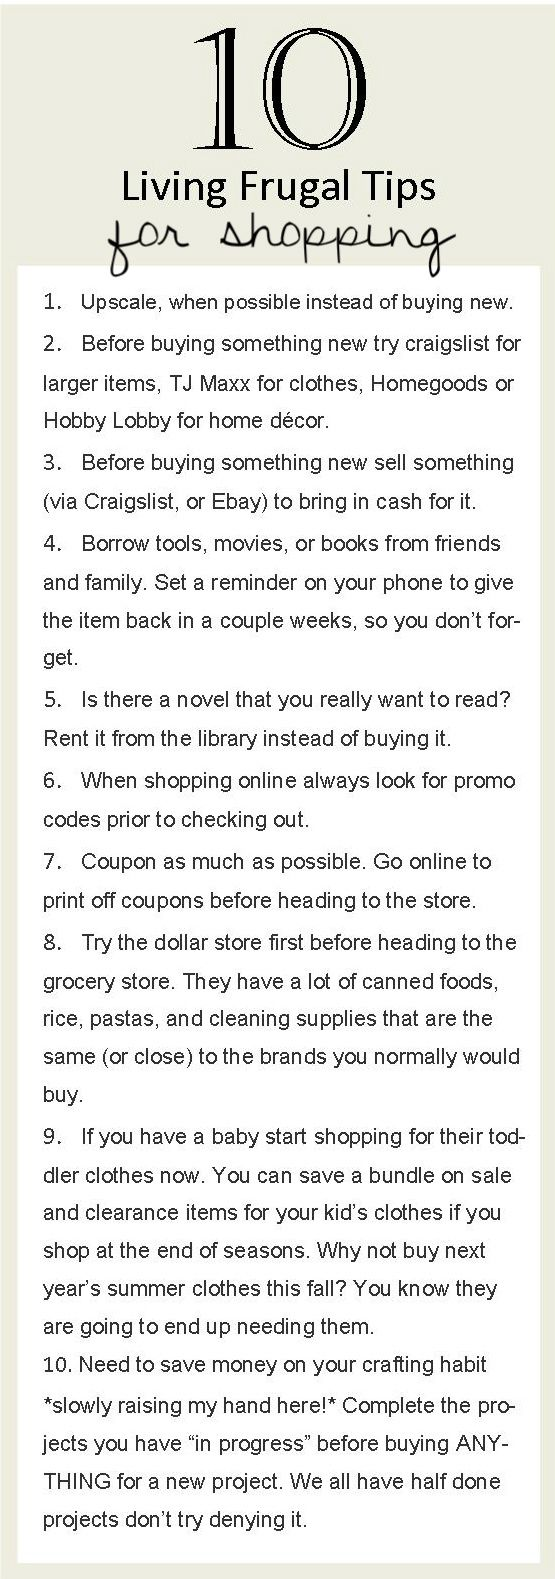 More frugal living tips from Last Legs Blog.